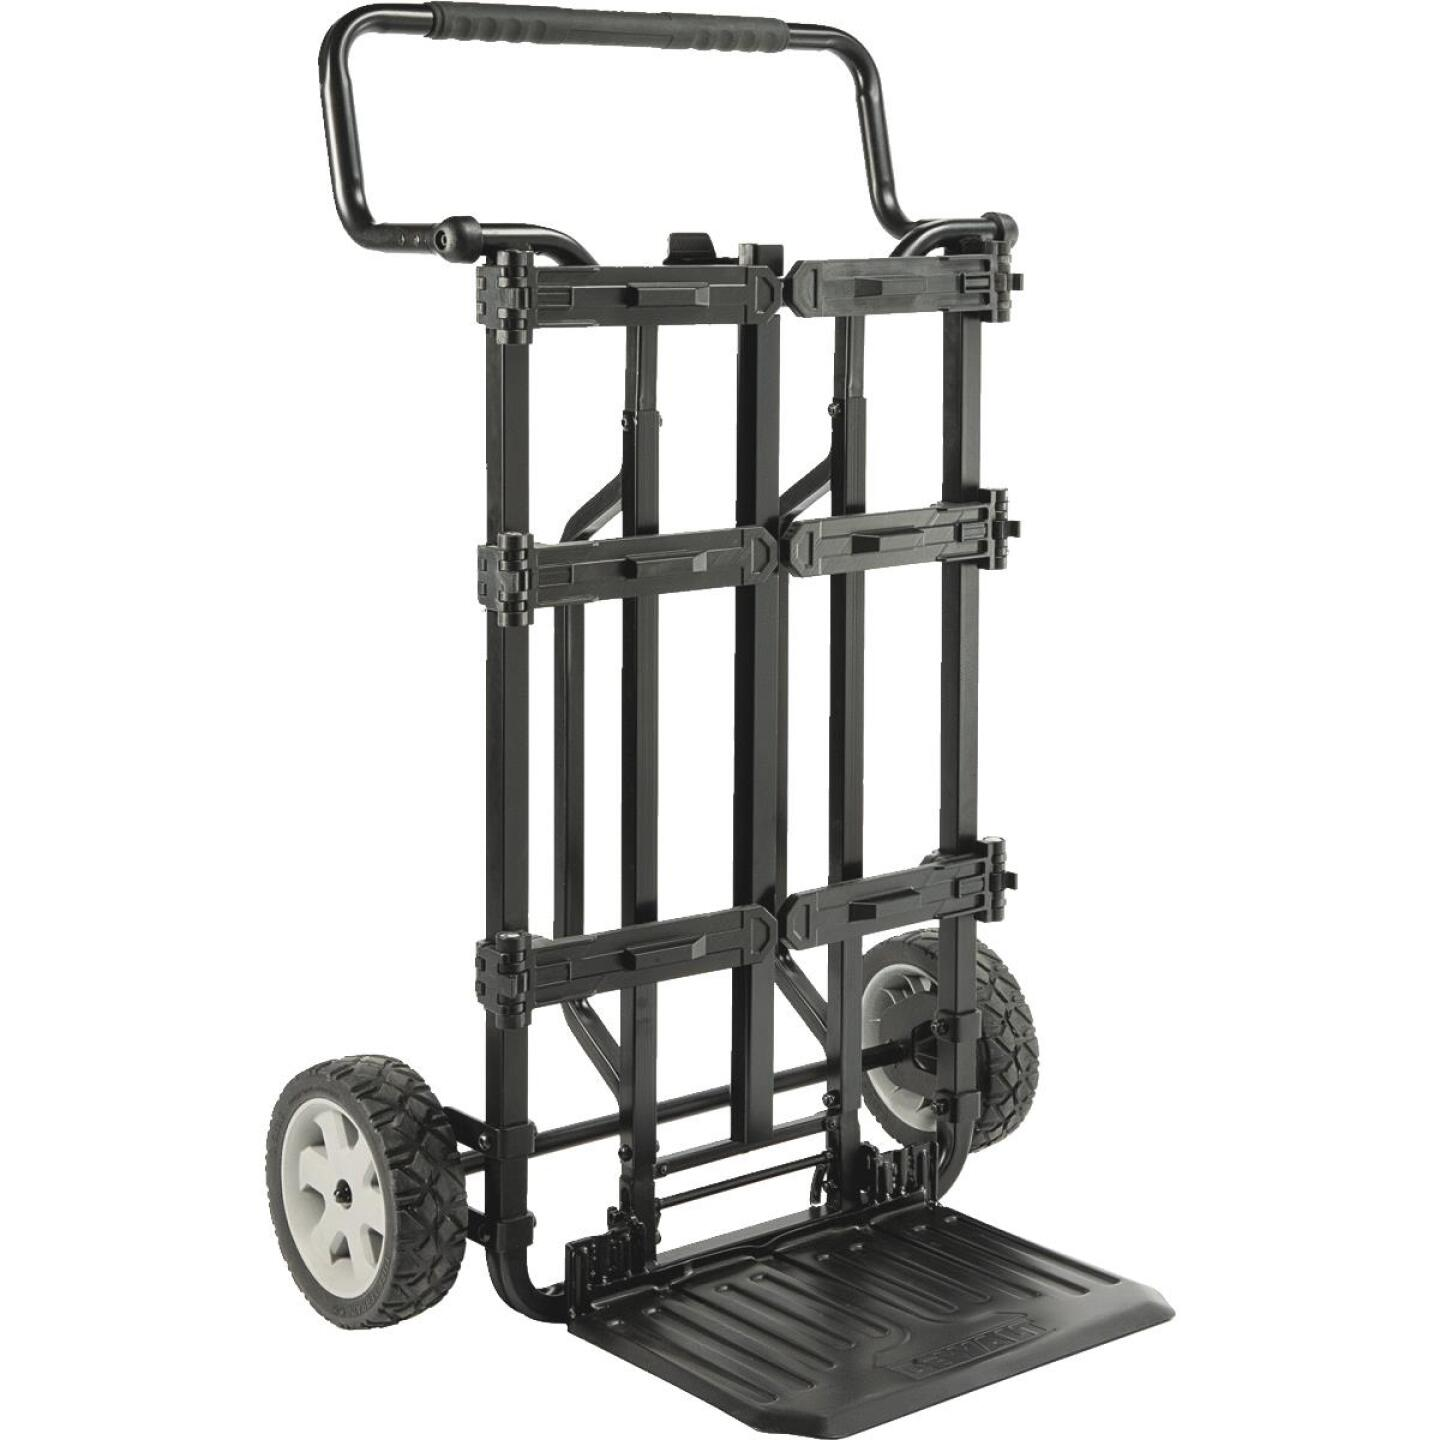 Dewalt ToughSystem 9 In. W x 37 In. H x 26 In. L DS Carrier Tool Cart Image 1